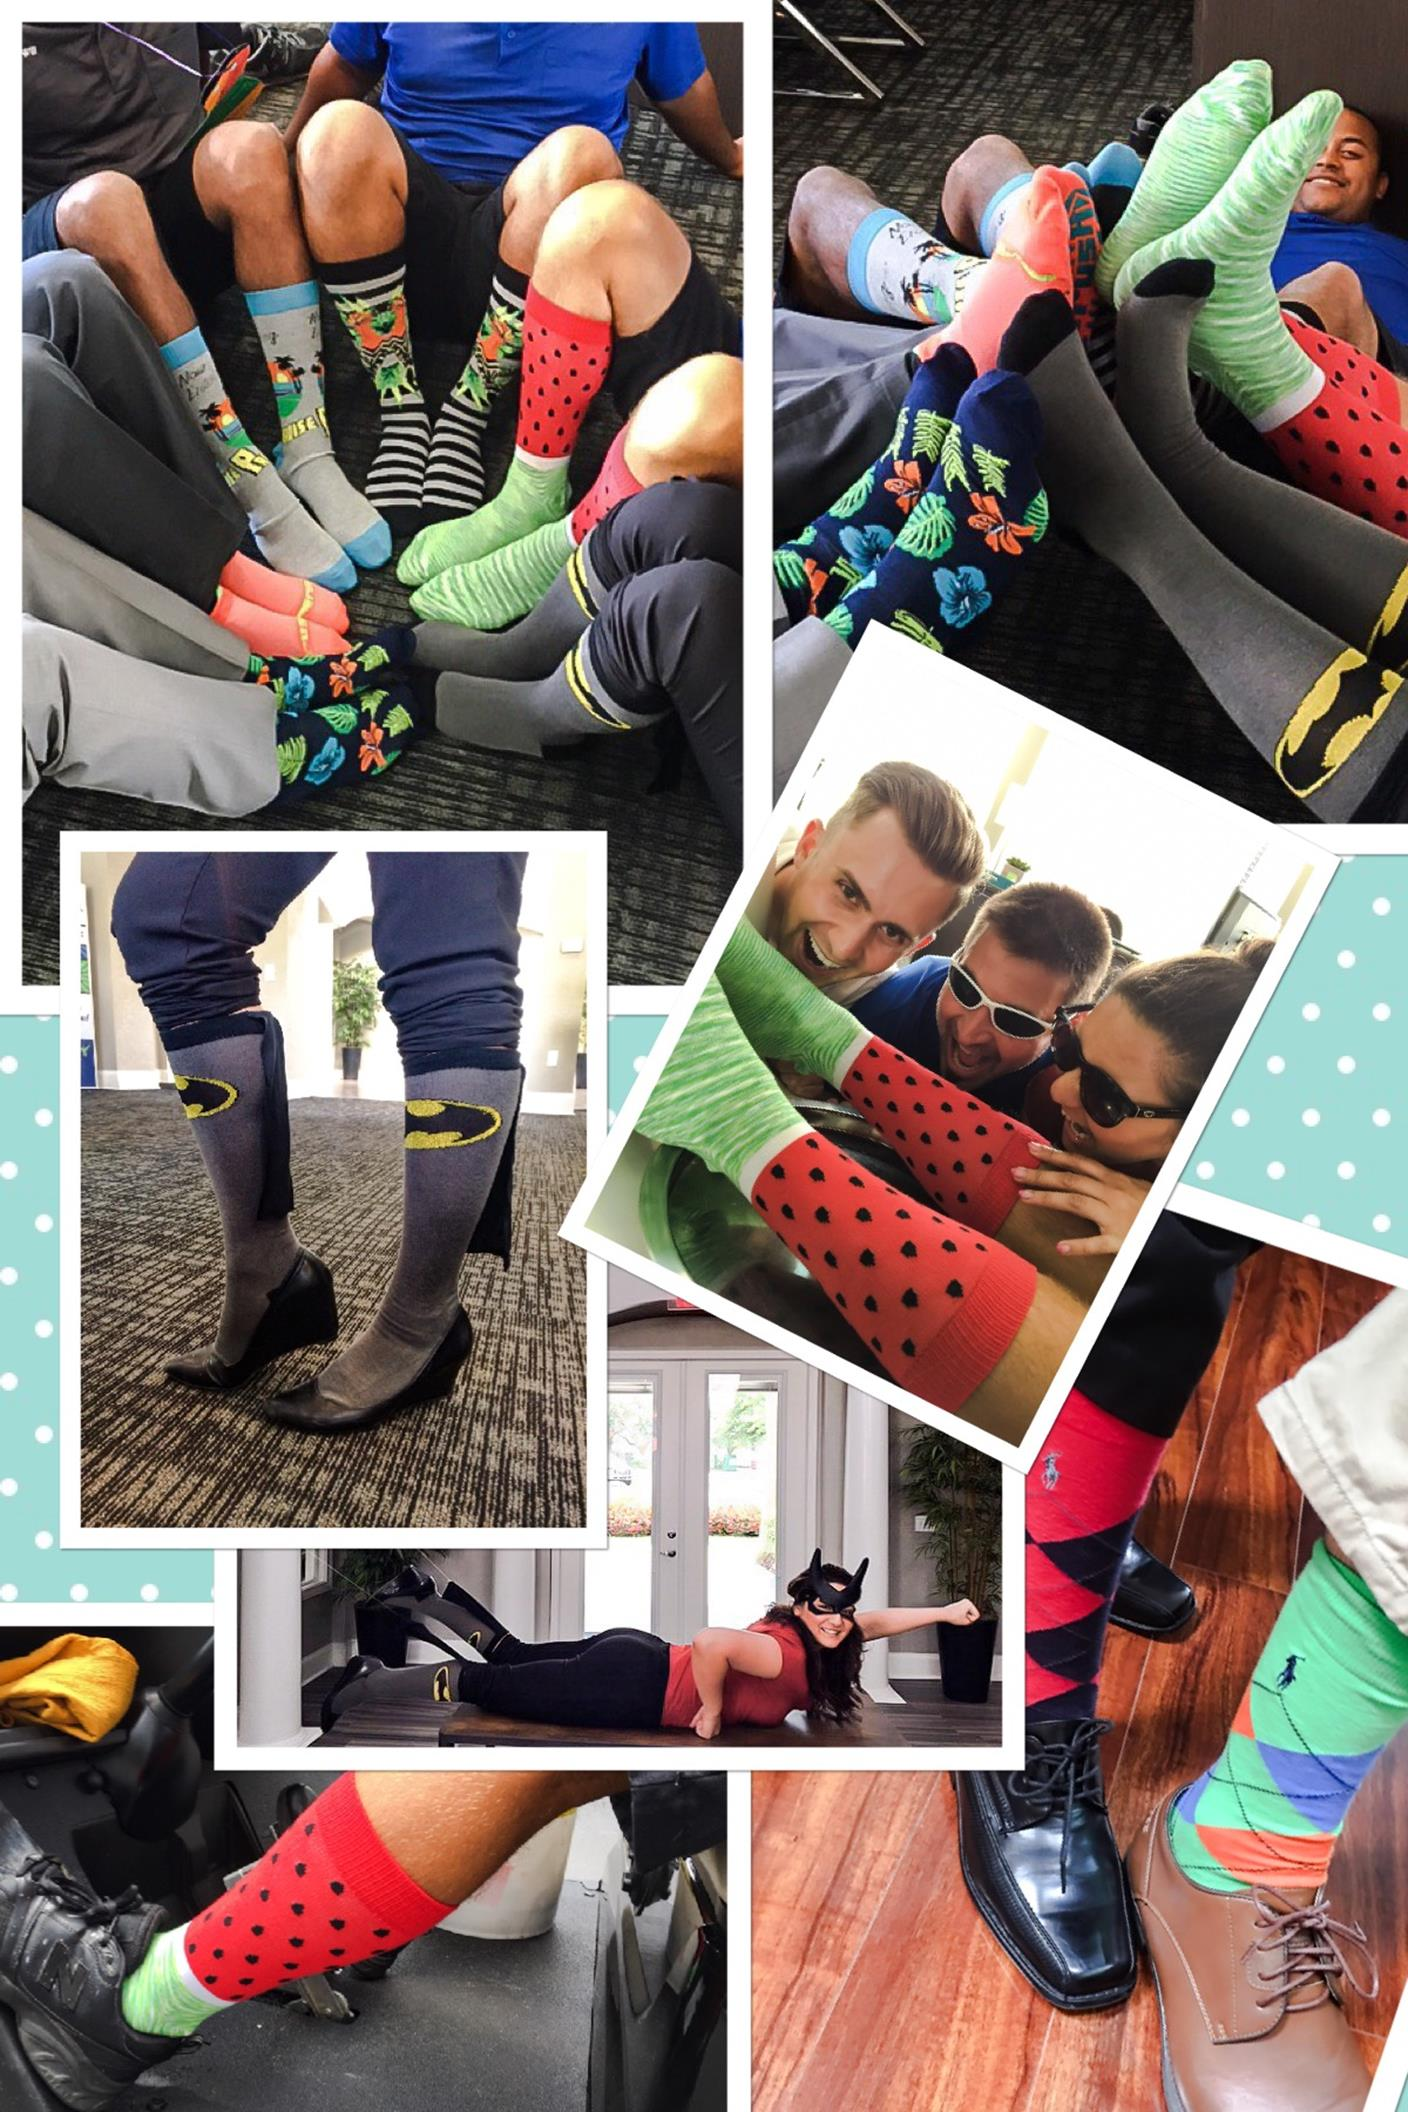 Fun Sock Friday Makes Camden a Great Place to Work